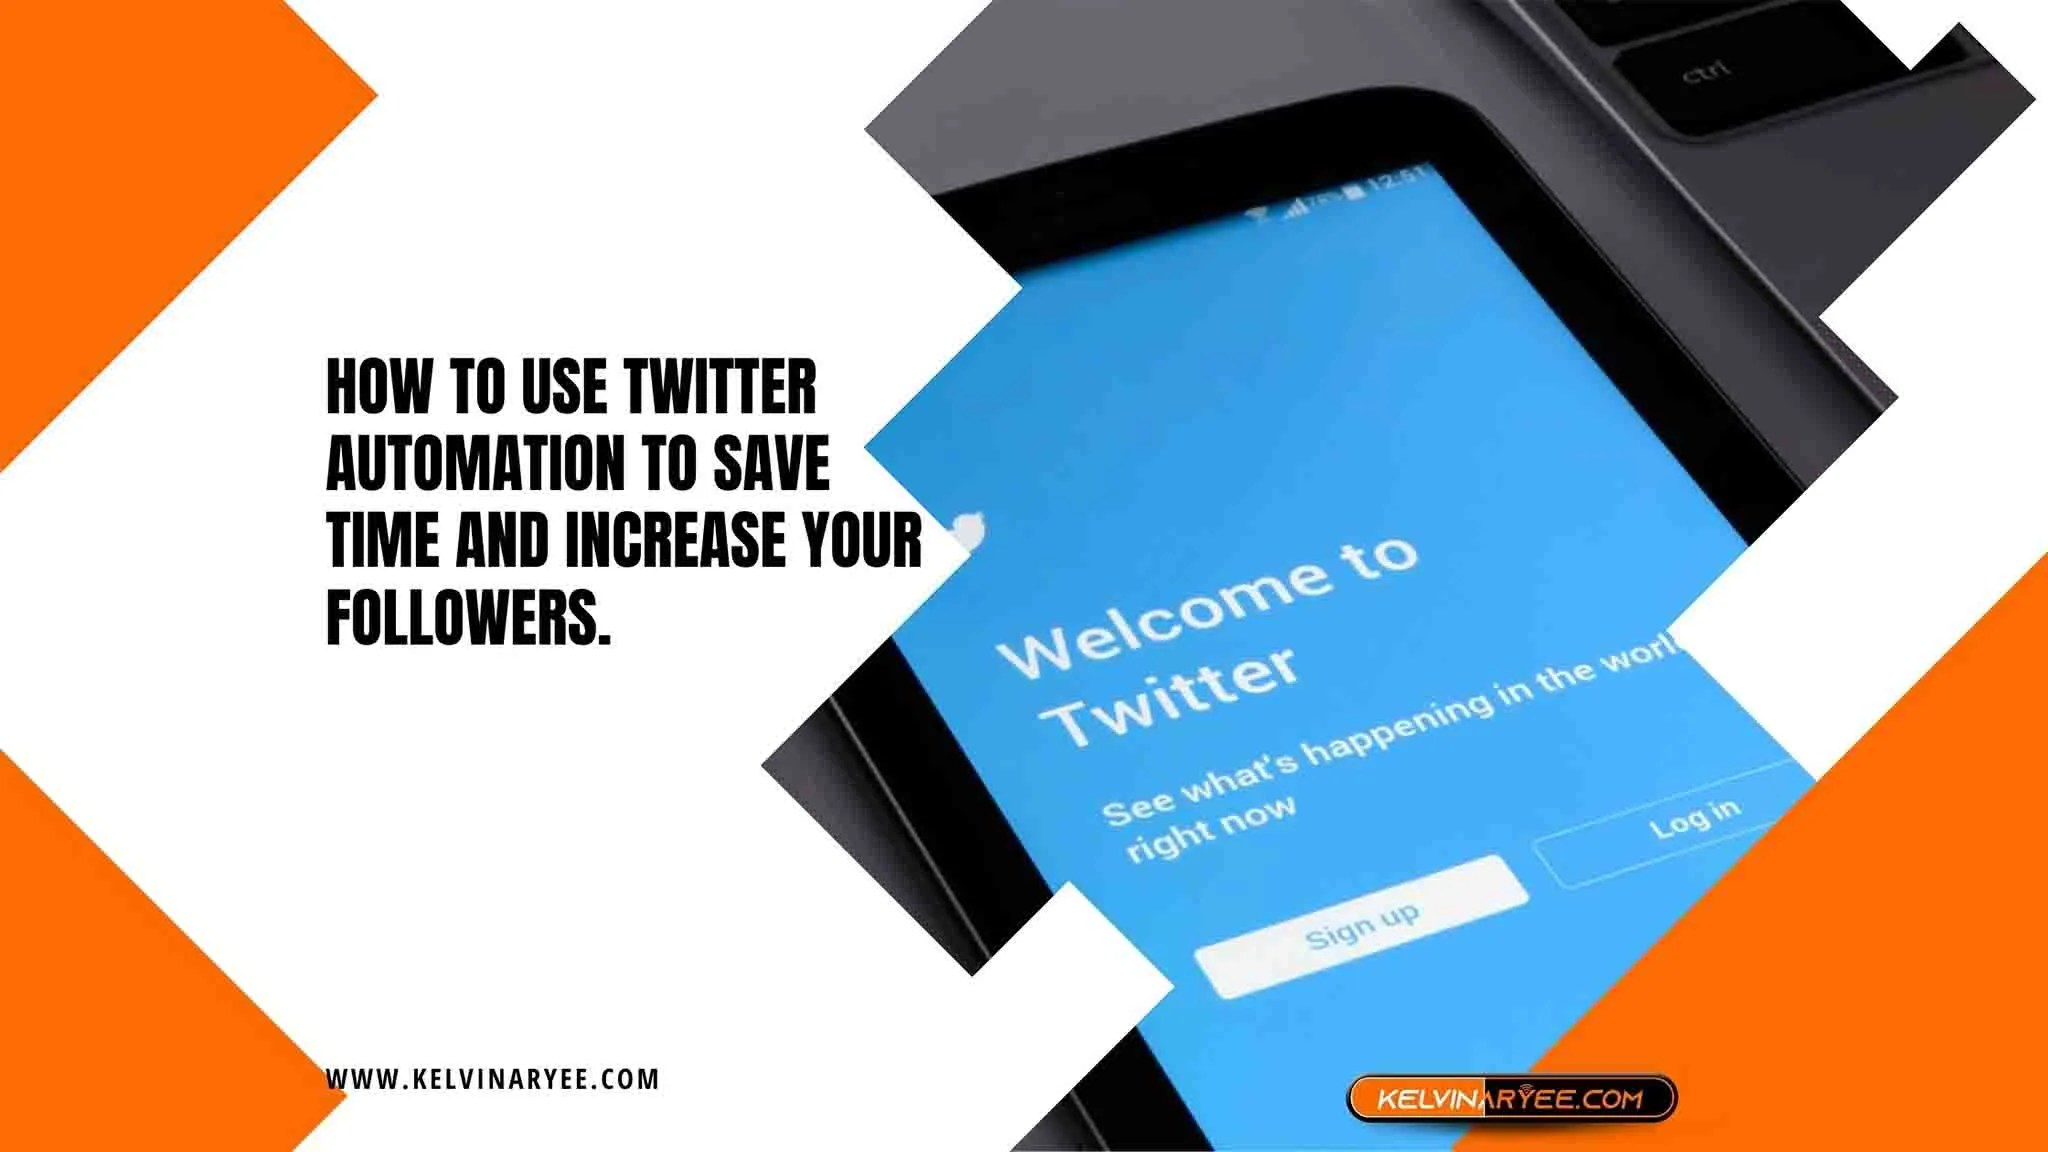 You are currently viewing How to Use Twitter Automation to Save Time and Increase Your Followers.